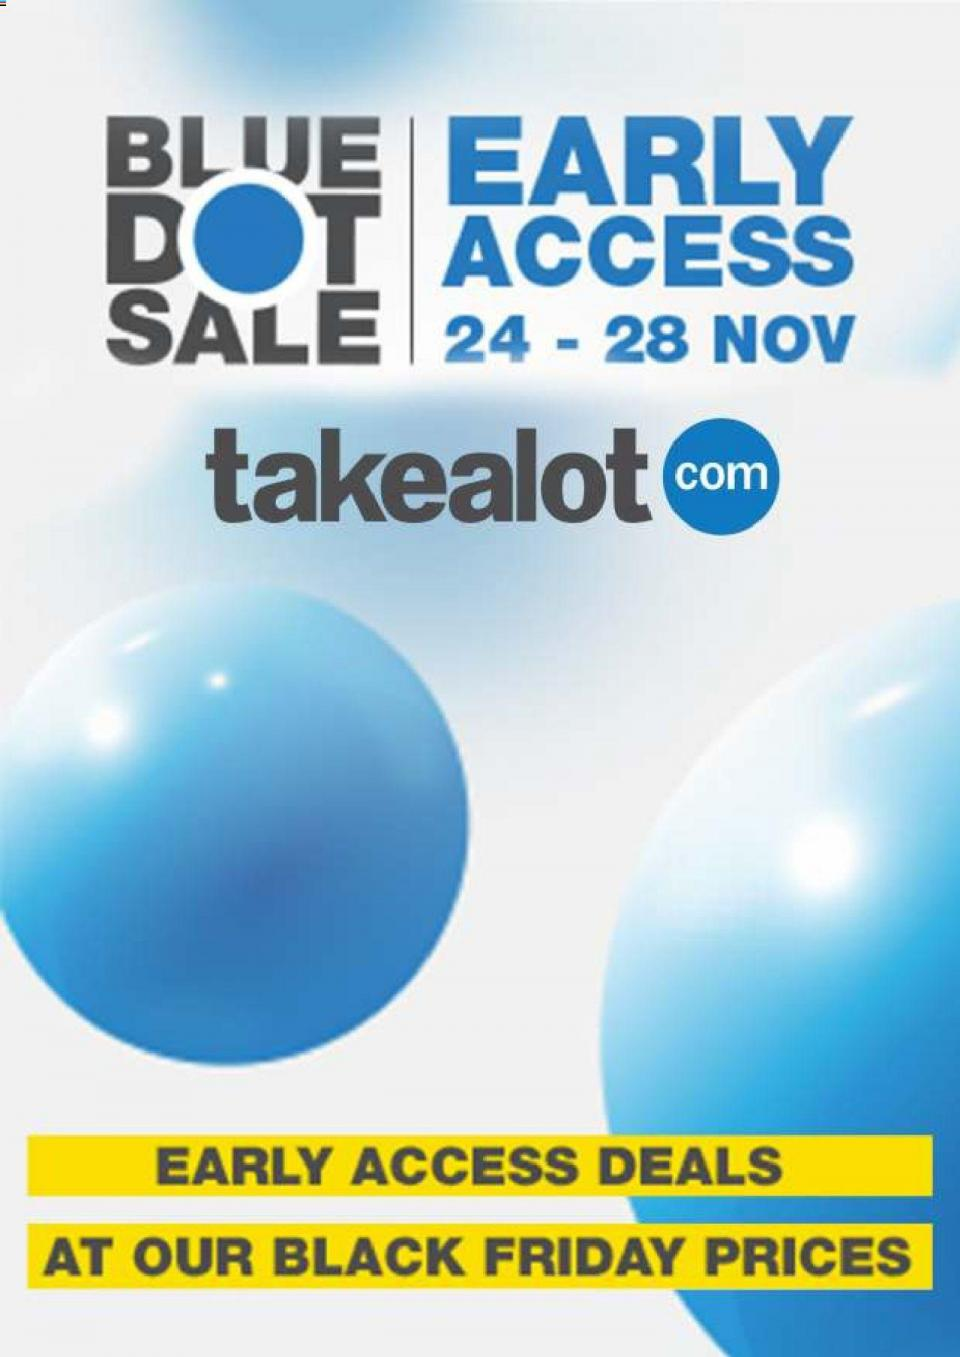 takealot specials black friday 25 november 2019